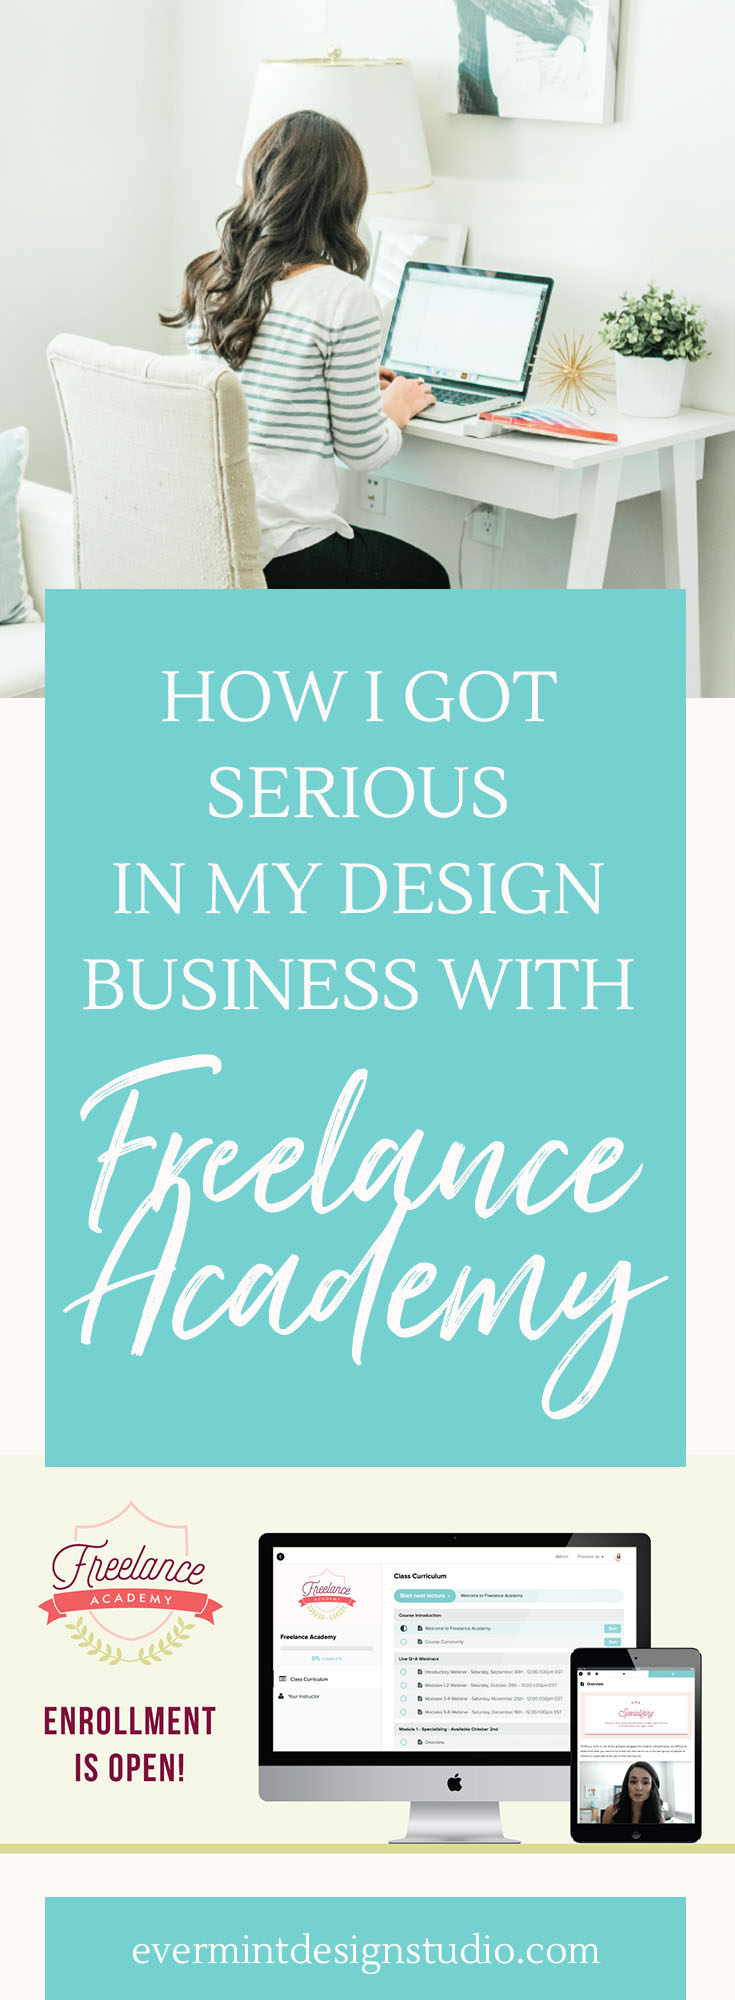 How I Got Serious in My Design Business with Freelance Academy